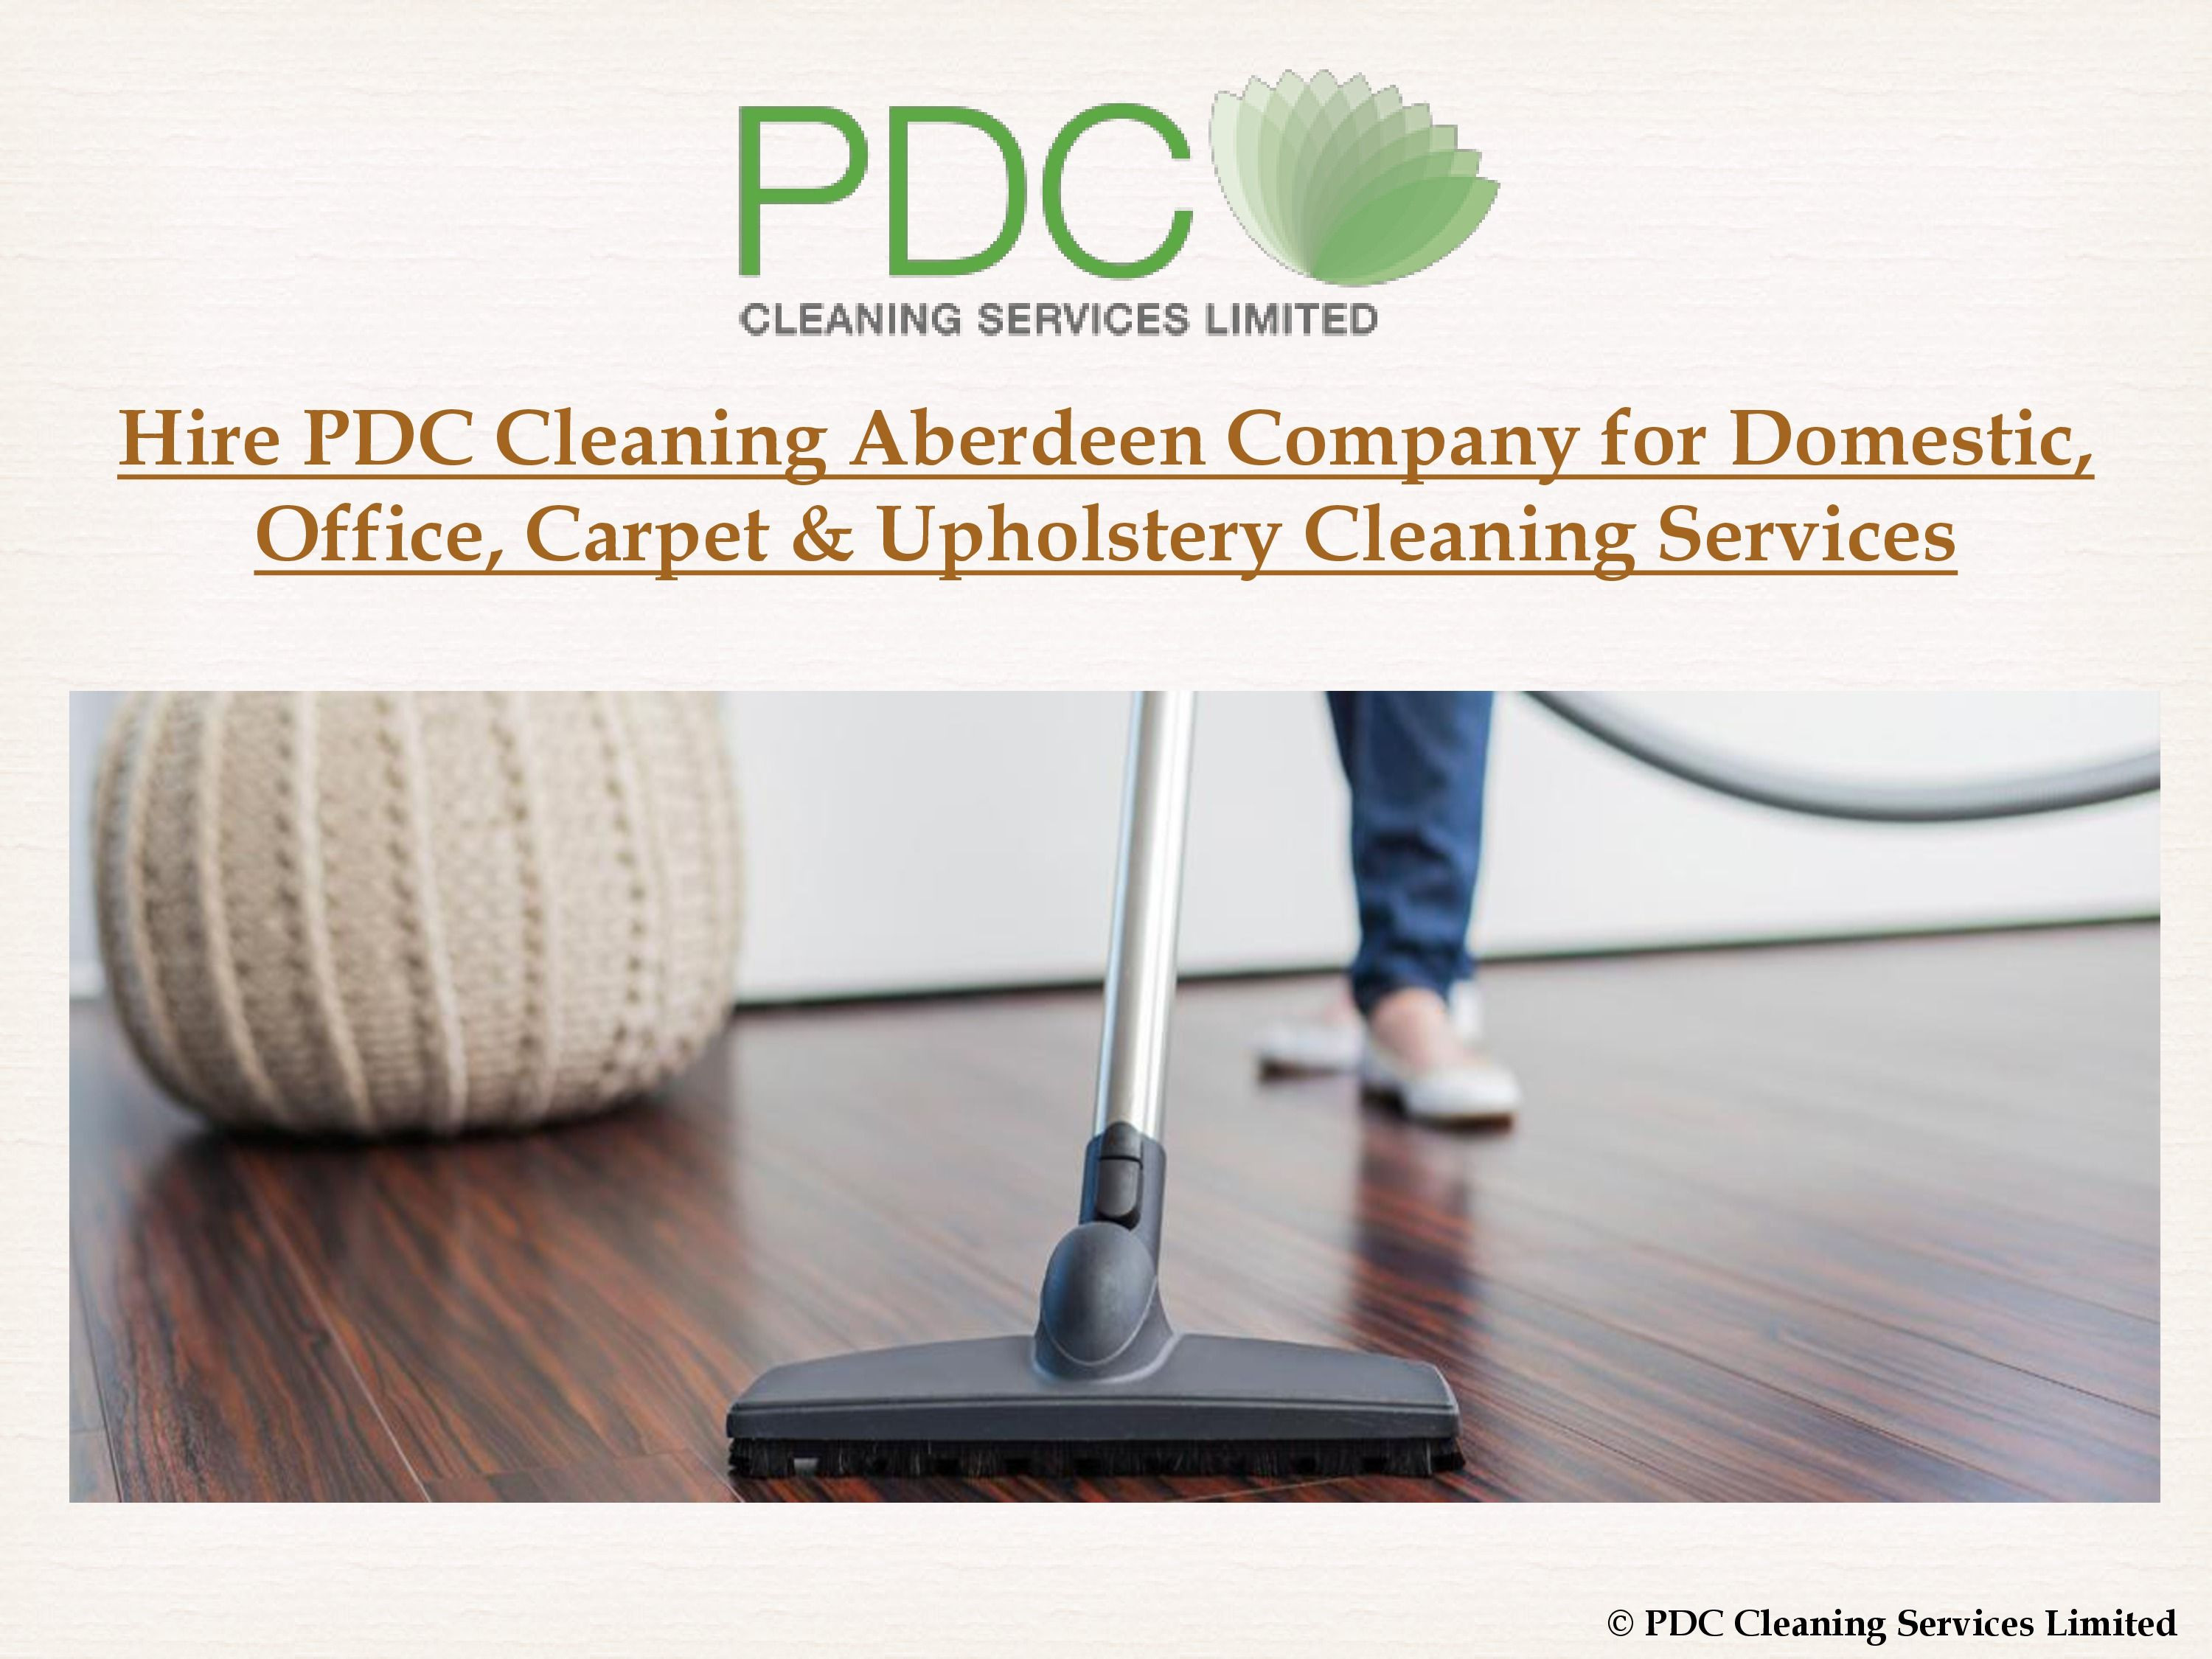 hoover hardwood floor steam cleaner of best professional home cleaning services offers carpet cleaning with regard to best professional home cleaning services offers carpet cleaning upholstery cleaning tiling flooring